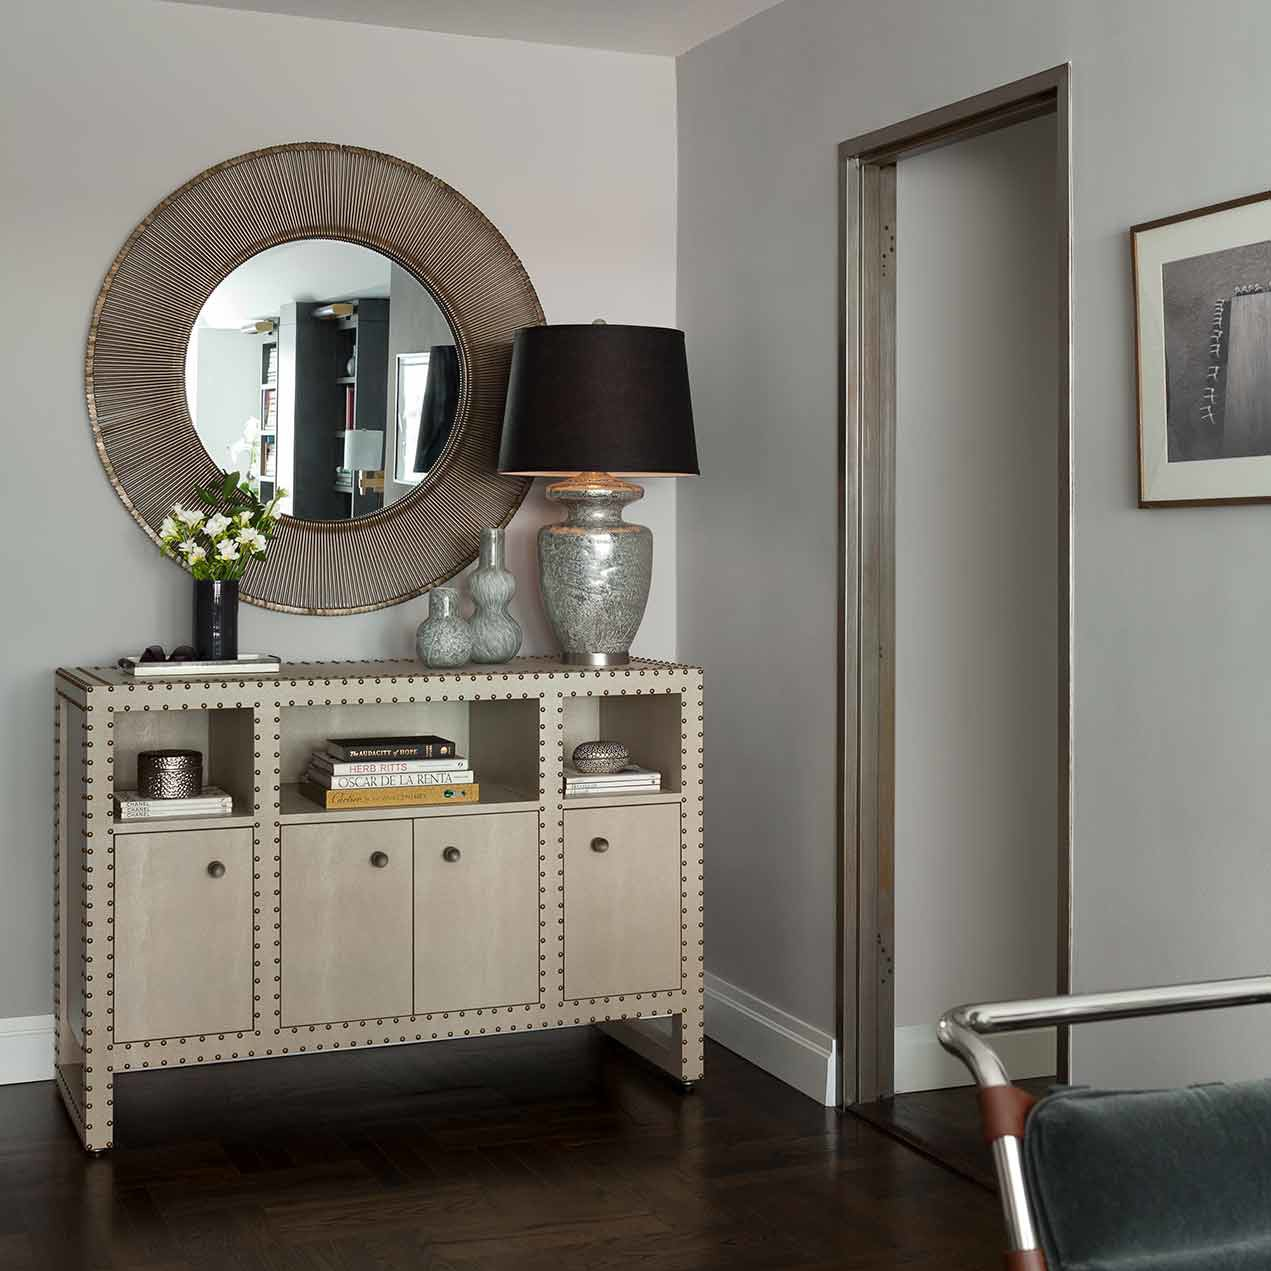 Custom made entry console in a one bedroom apartment renovation project by Darci hether New York